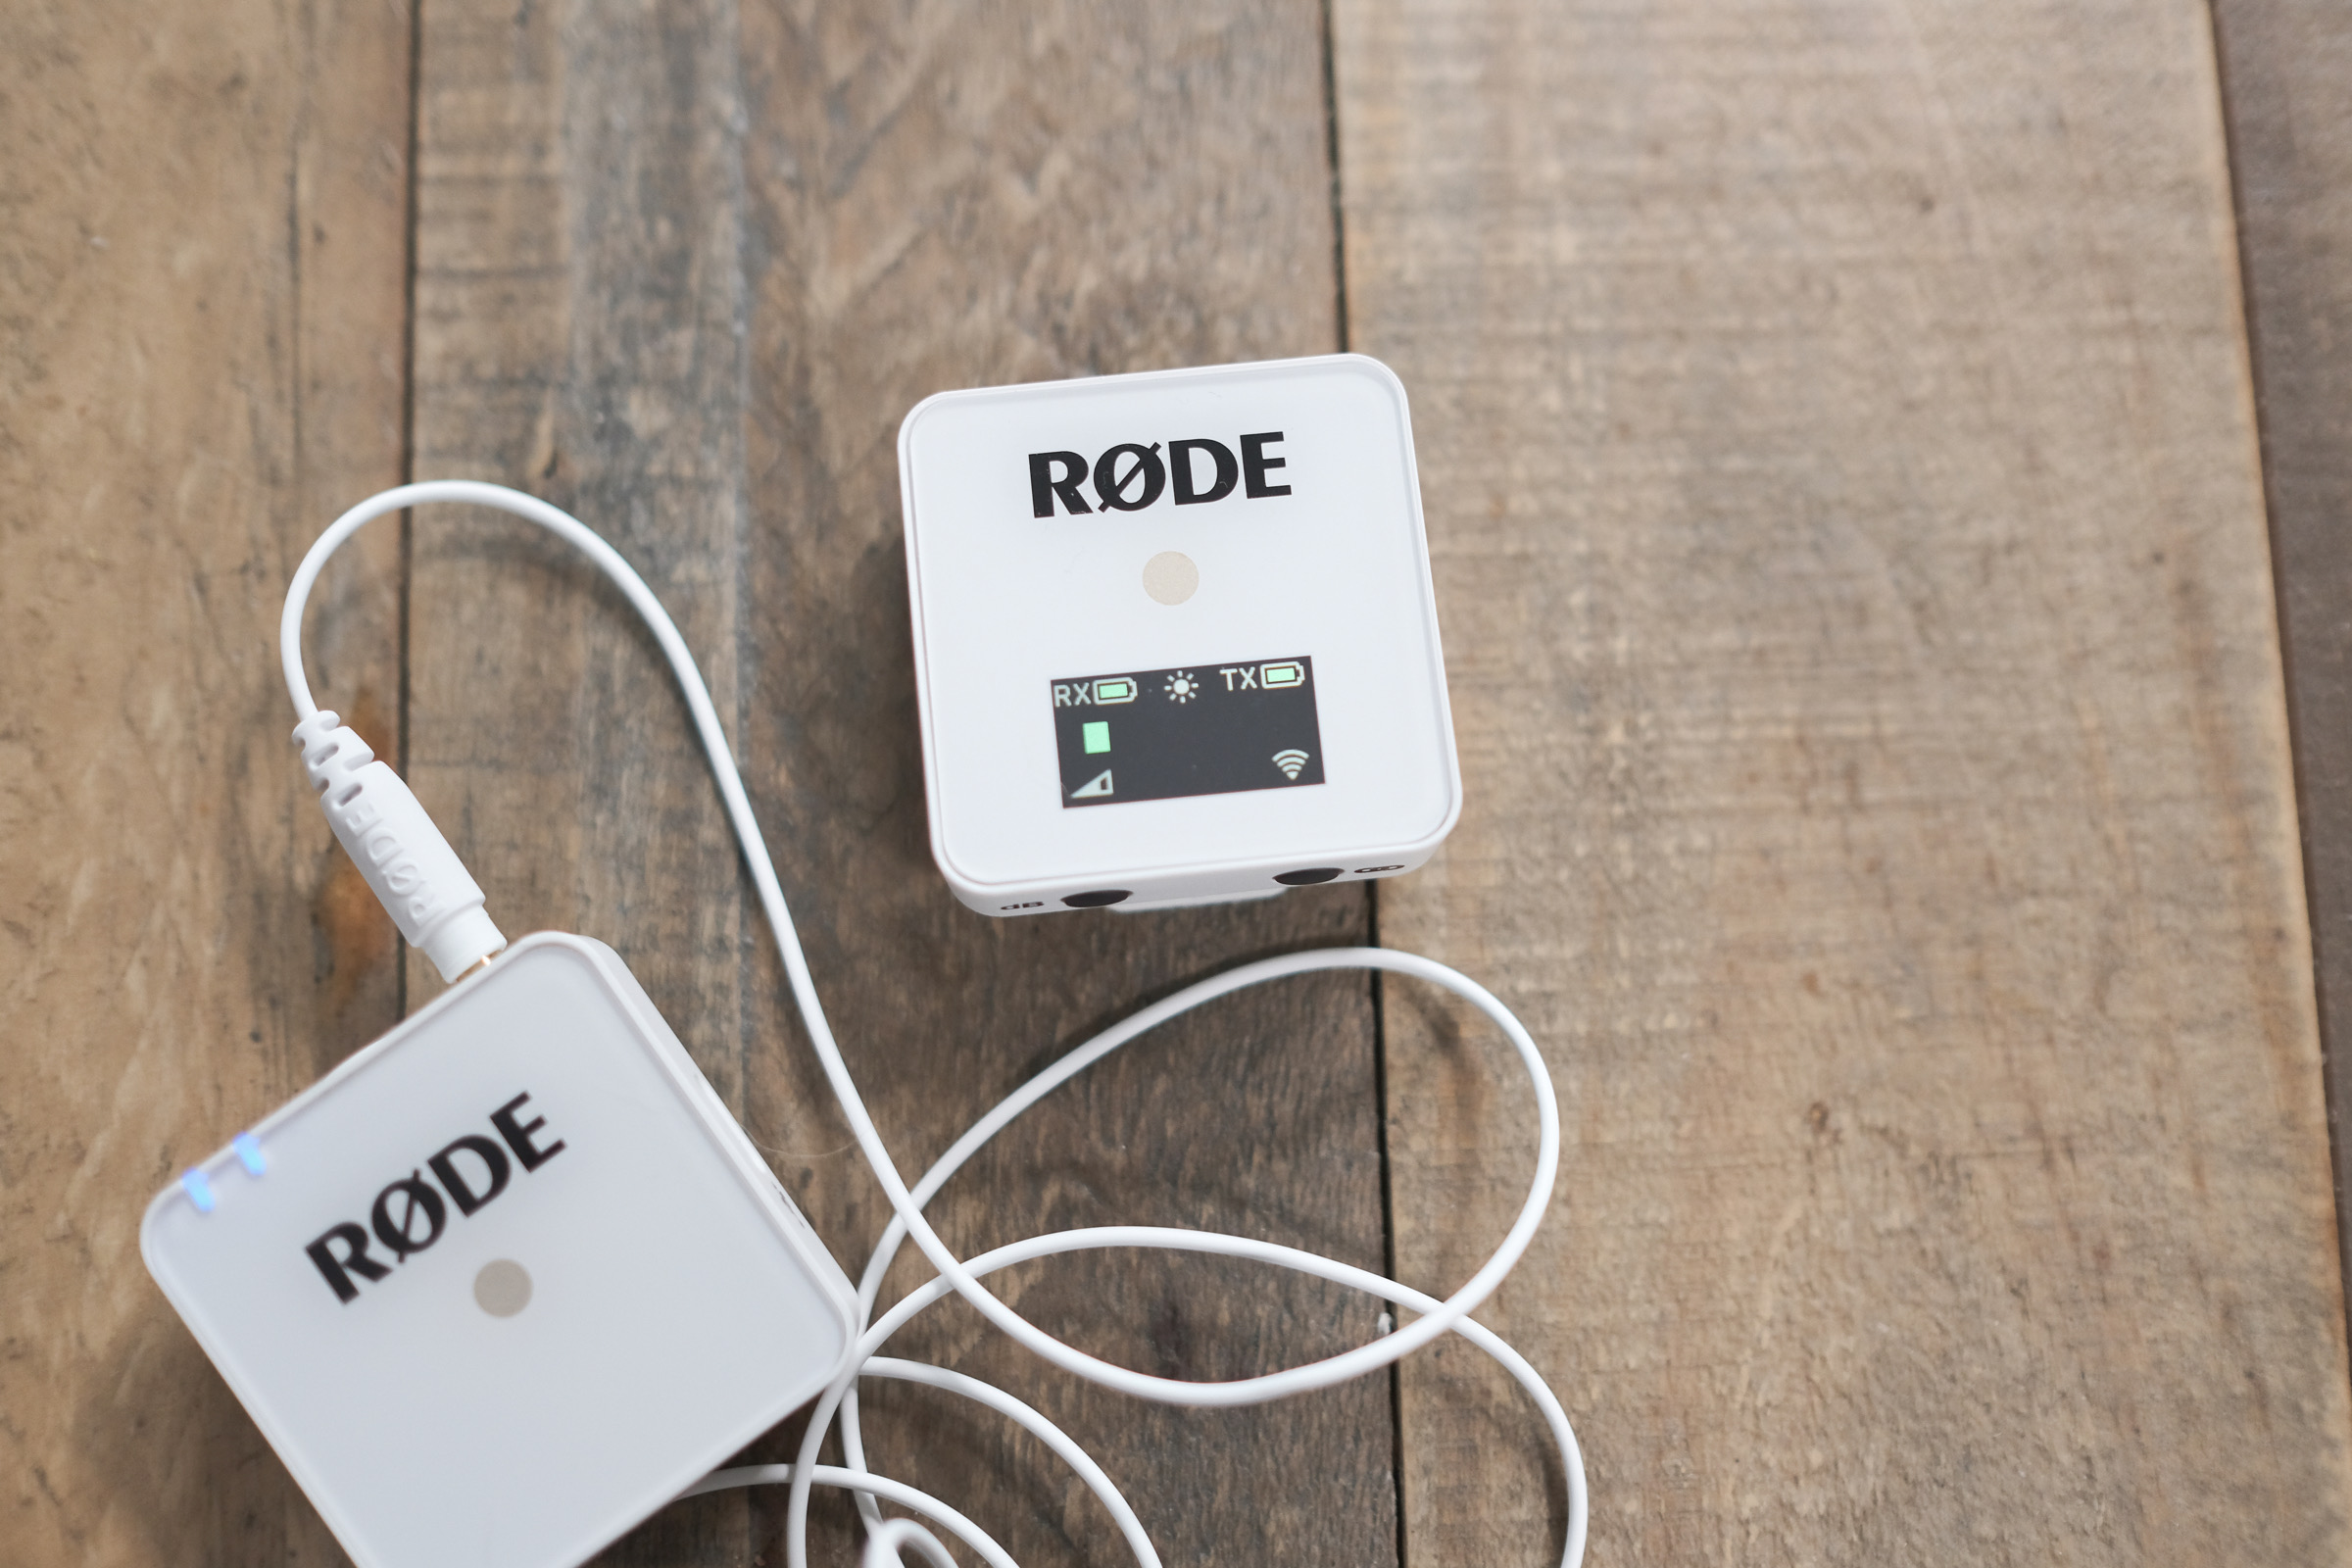 Rode's new white Wireless GO and accessories extend the flexibility of the most versatile creator mic 3